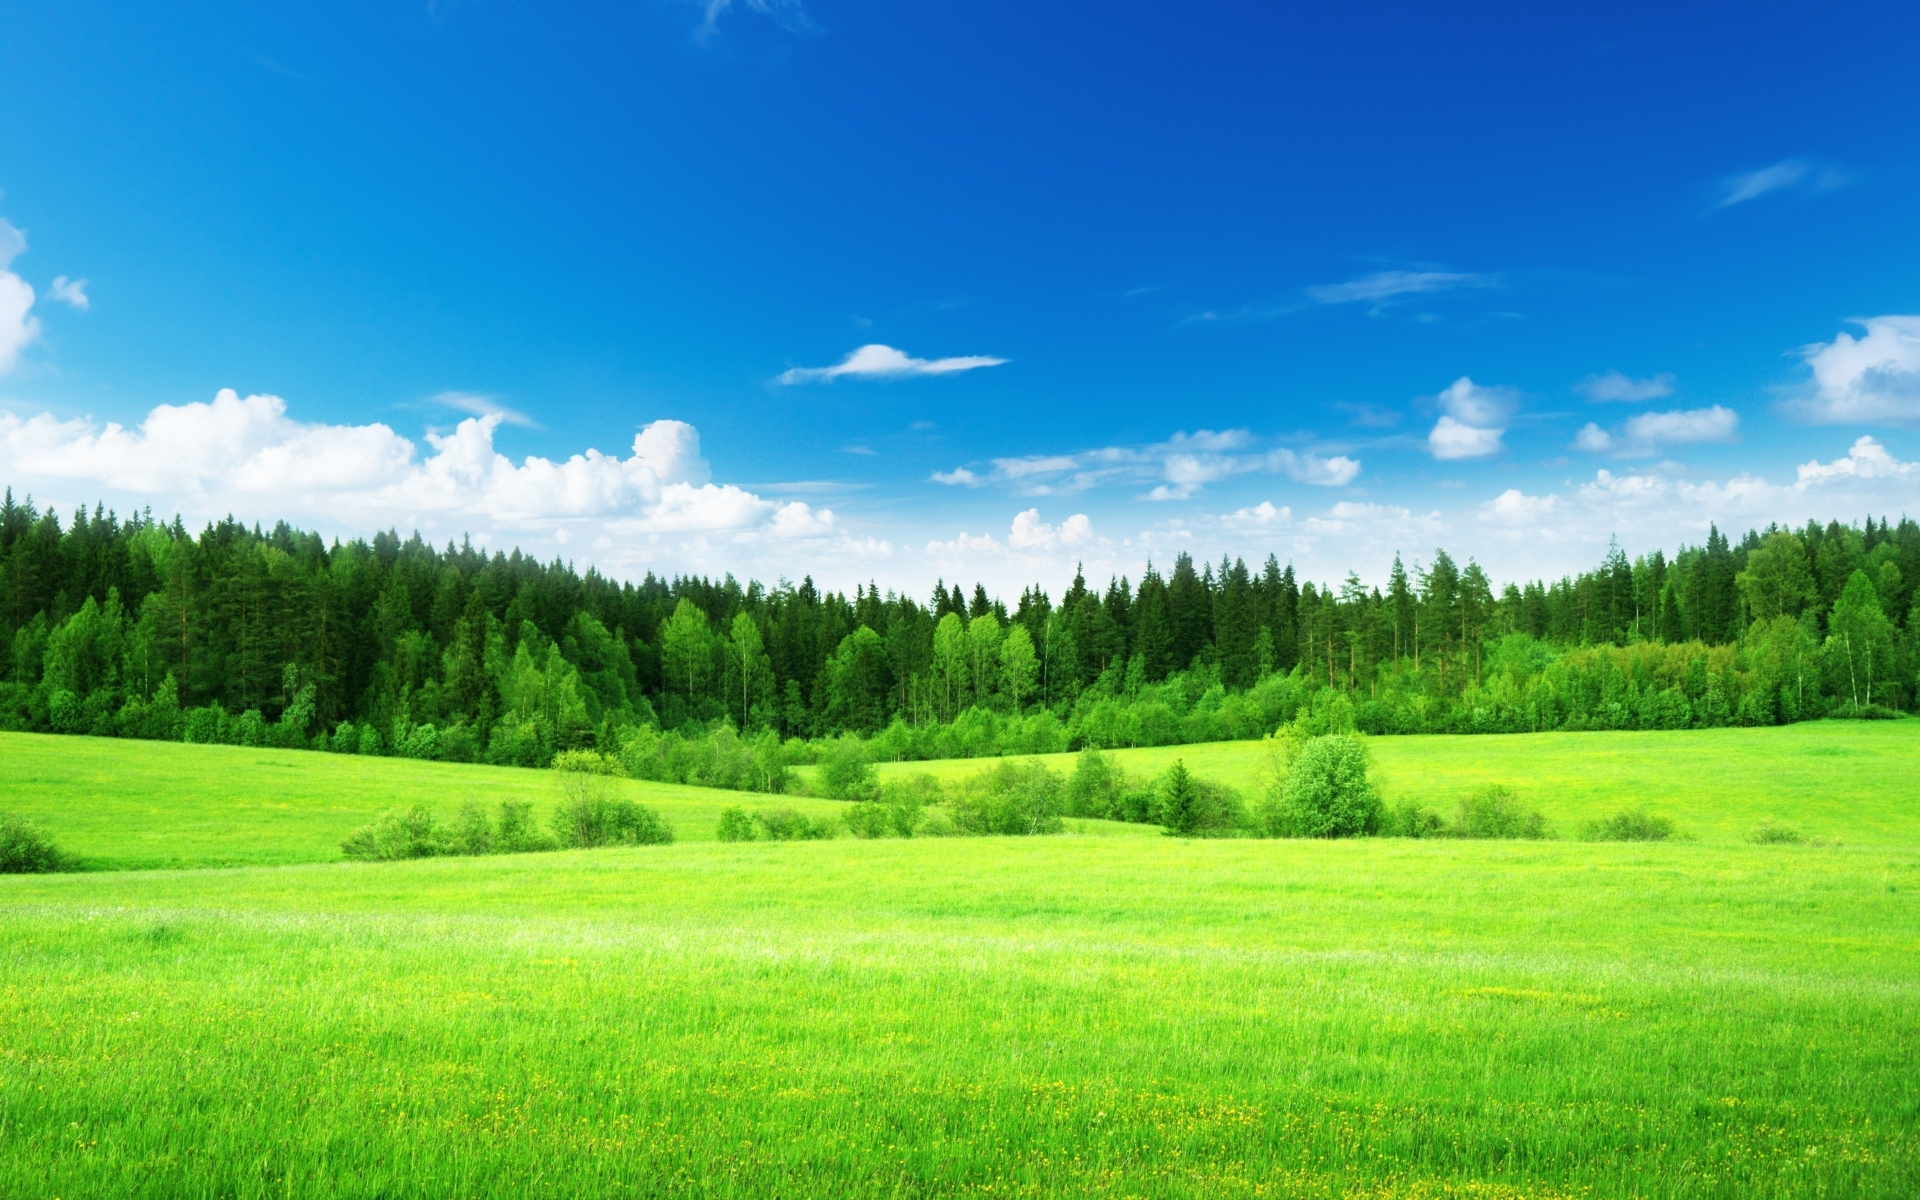 Image Sky Trees Grass Green Meadow Wallpapers And Stock Photos